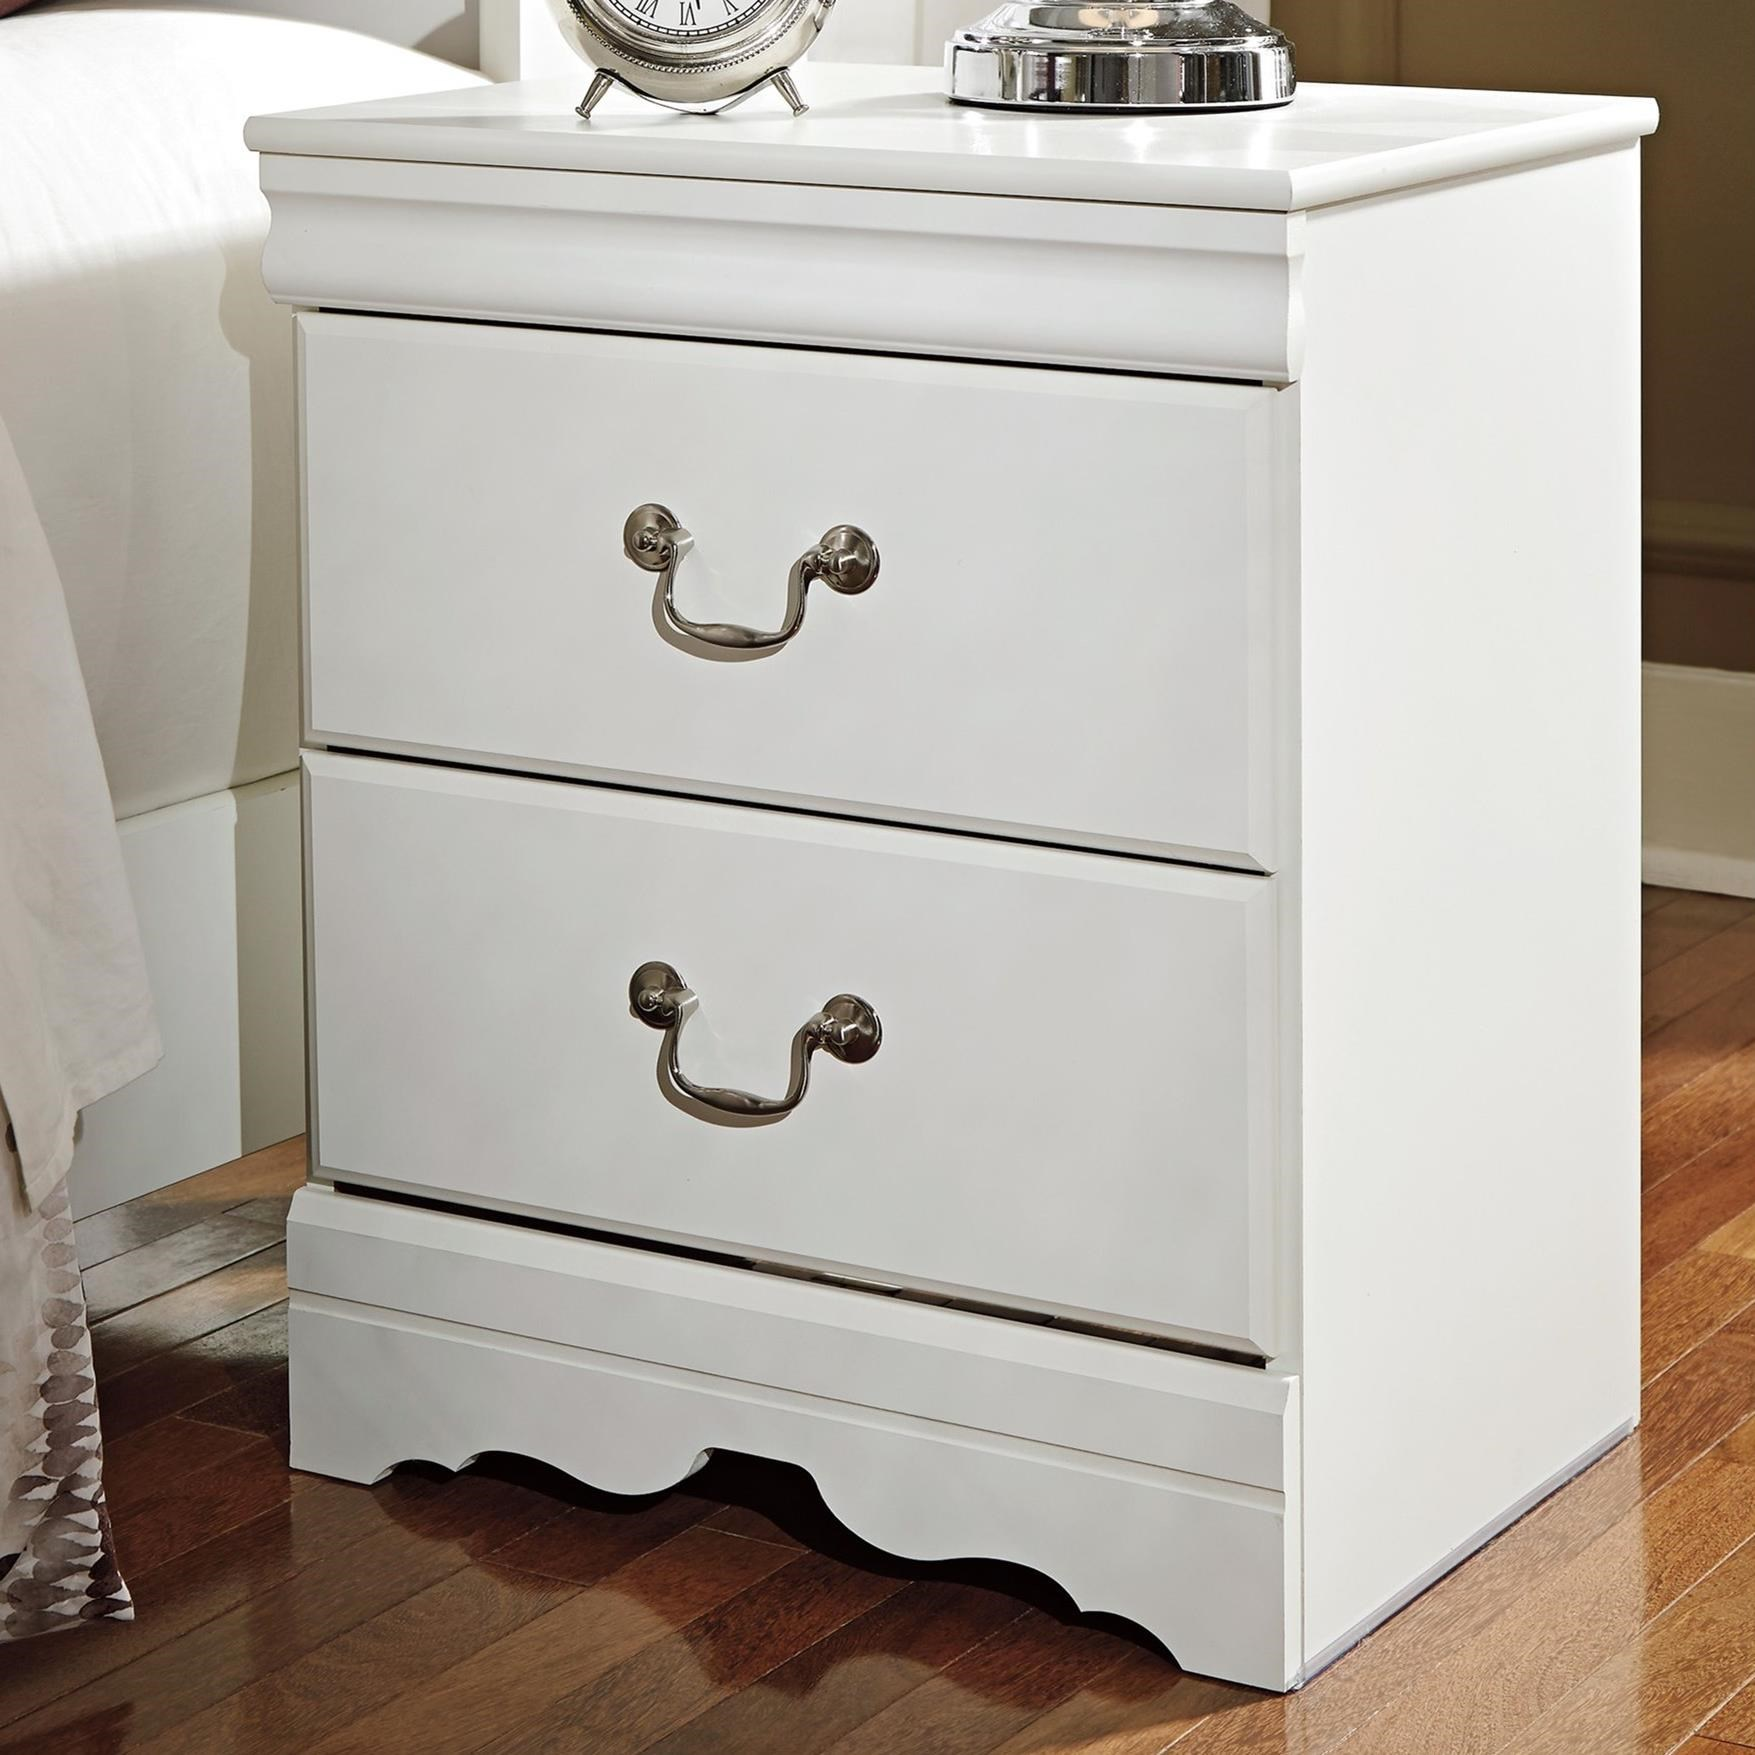 Anarasia Nightstand by Signature Design by Ashley at Northeast Factory Direct